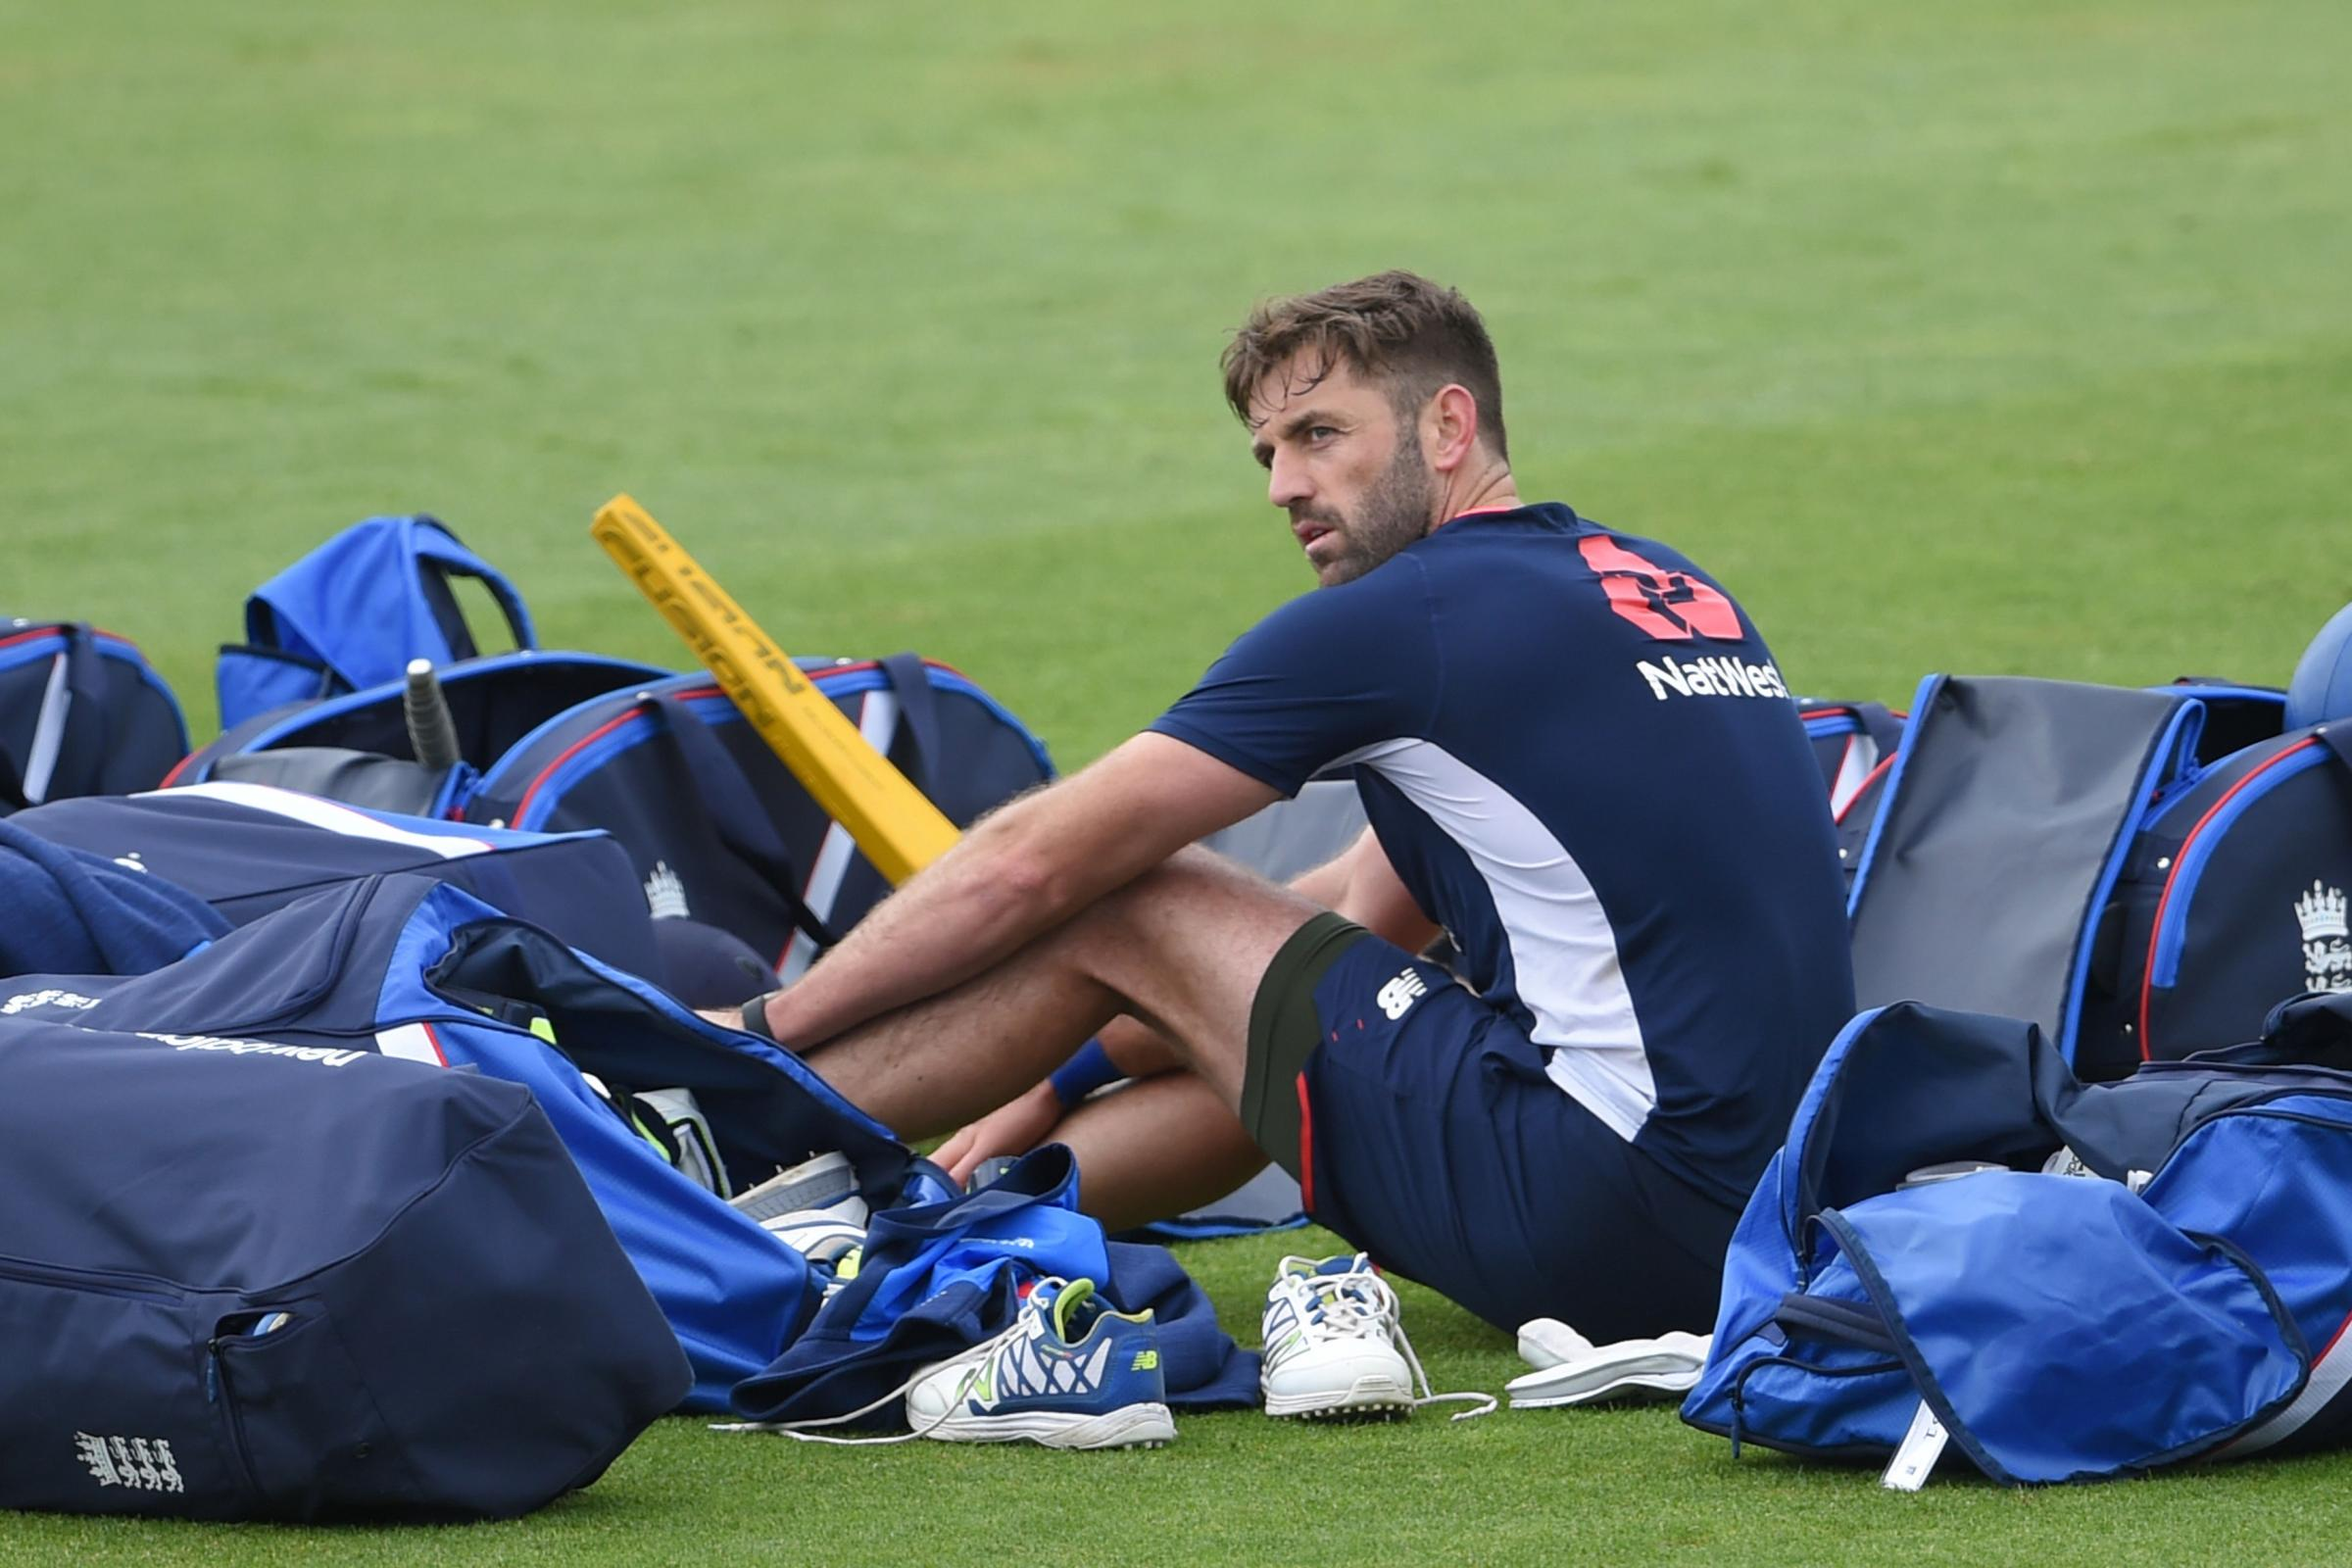 Liam Plunkett showed impressive speed while bowling during England's warm-up win over a Cricket Australia XI – Picture: Joe Giddens/PA Wire